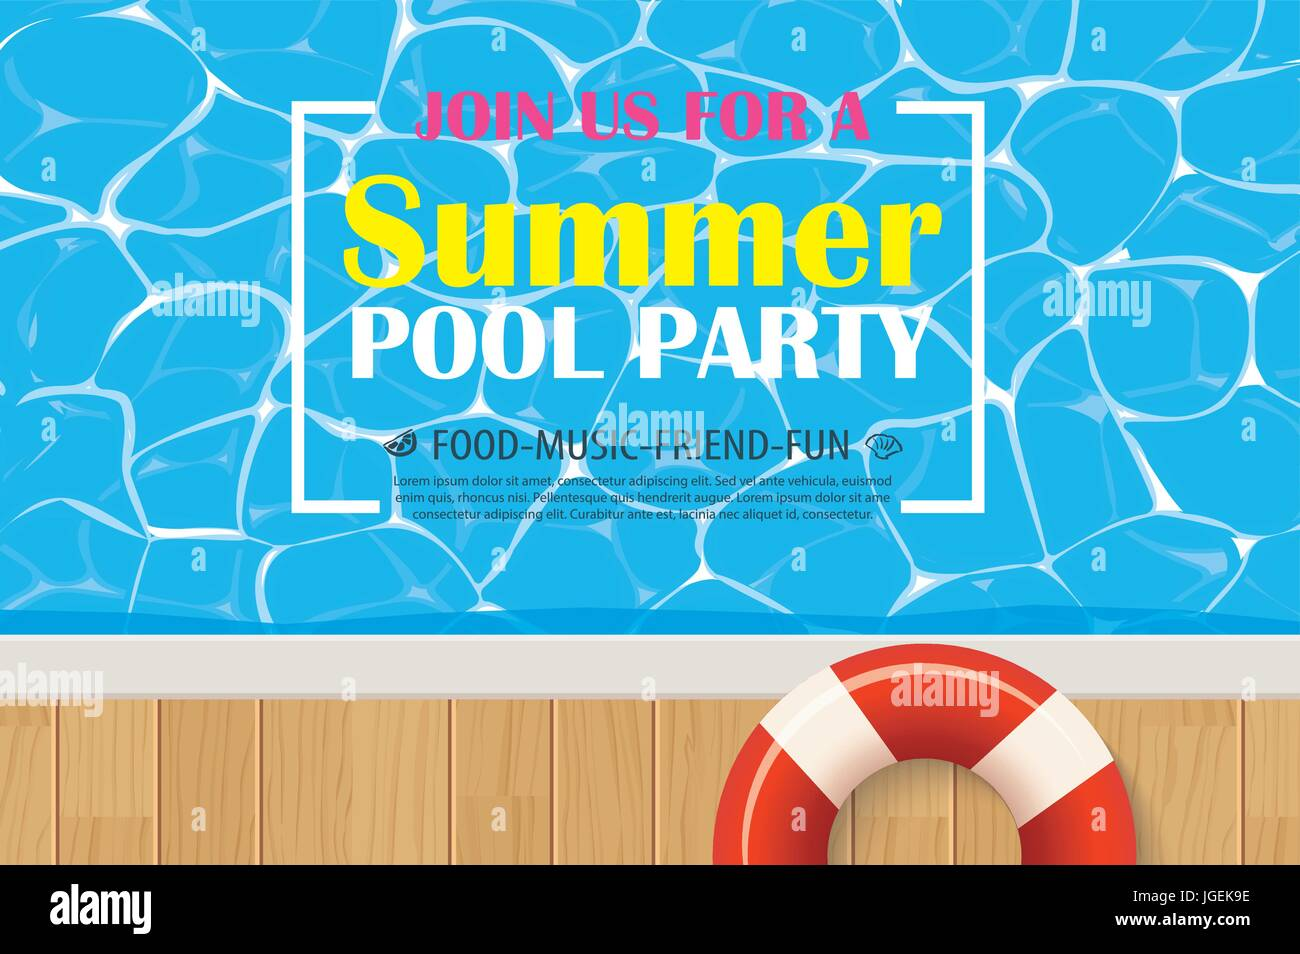 Pool Party Poster Template Design Stockfotos & Pool Party Poster ...